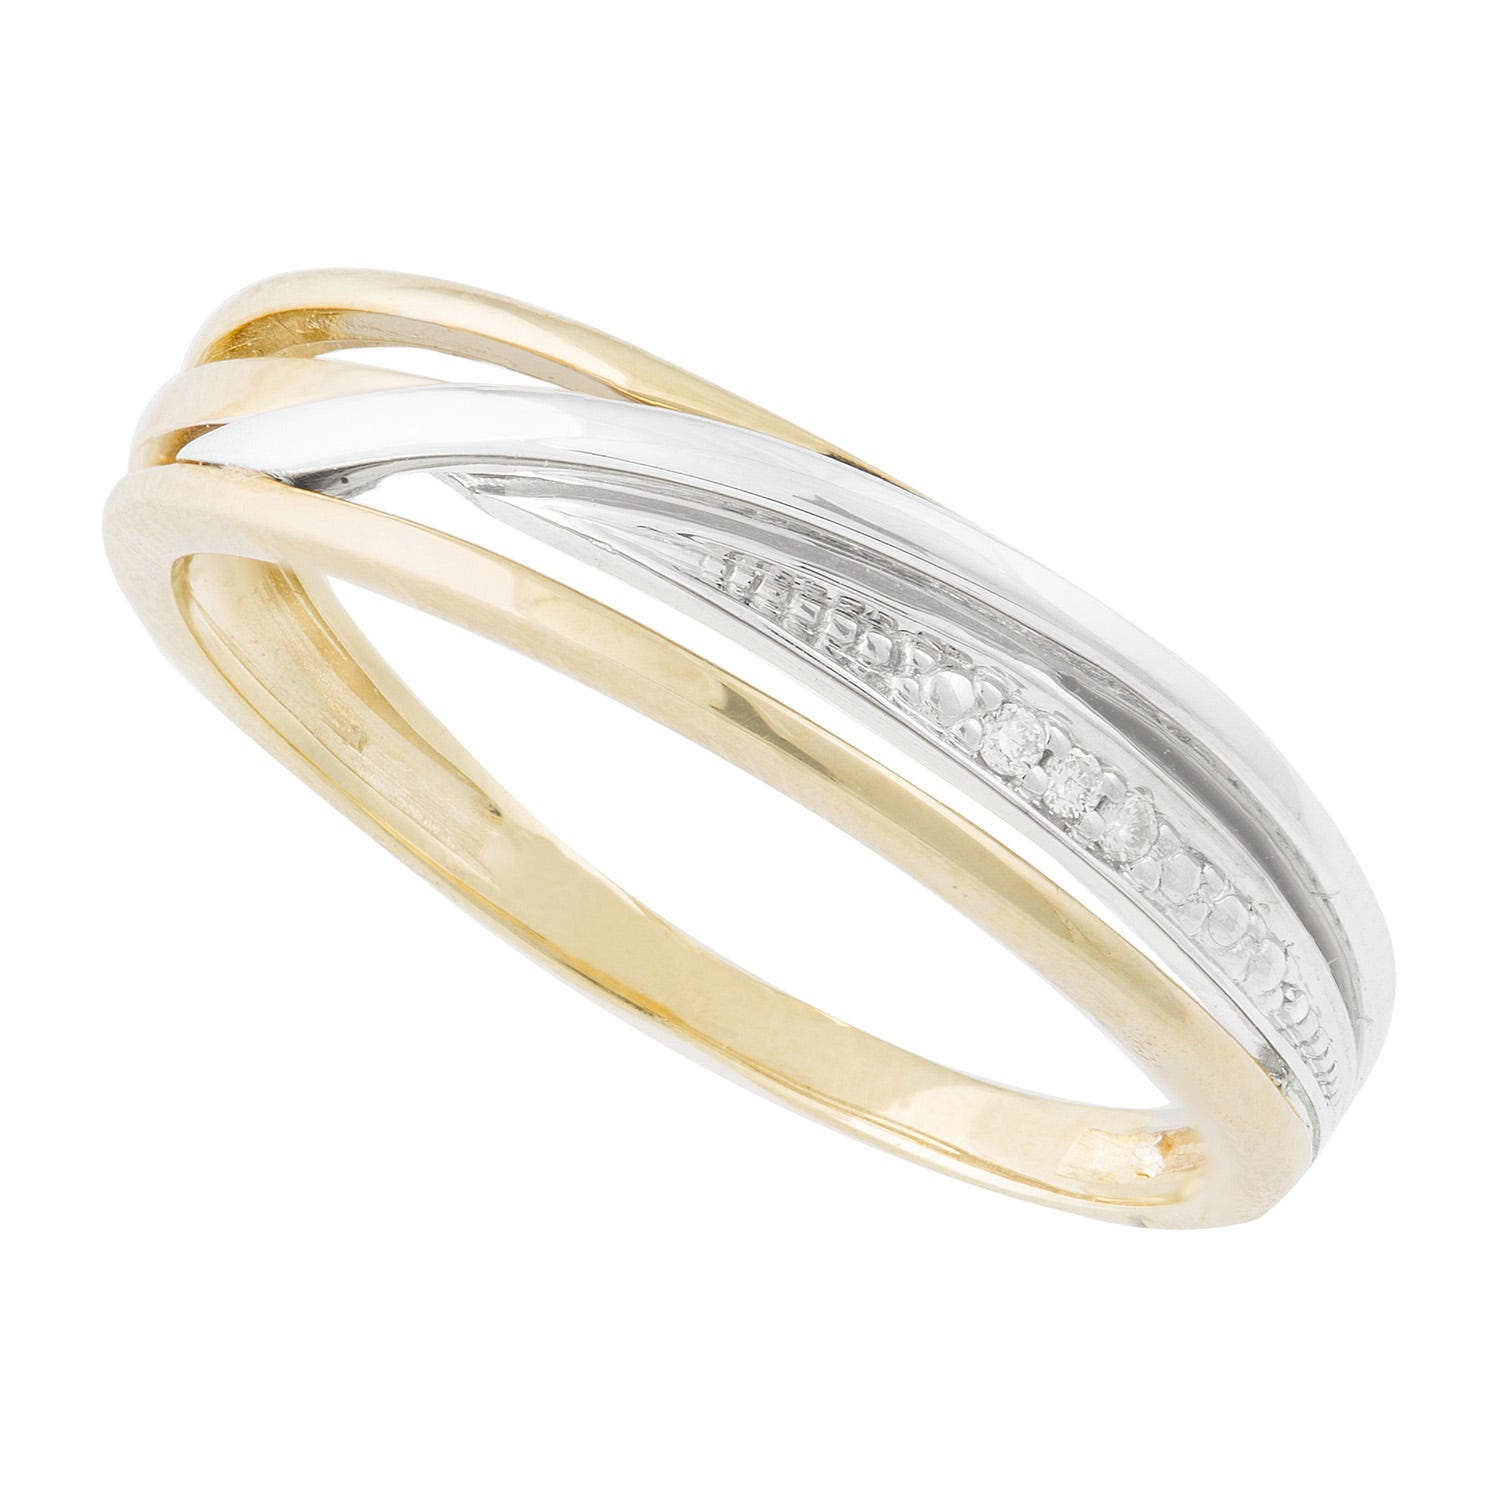 Ladies' 9ct White and Yellow Gold Diamond Dress Ring